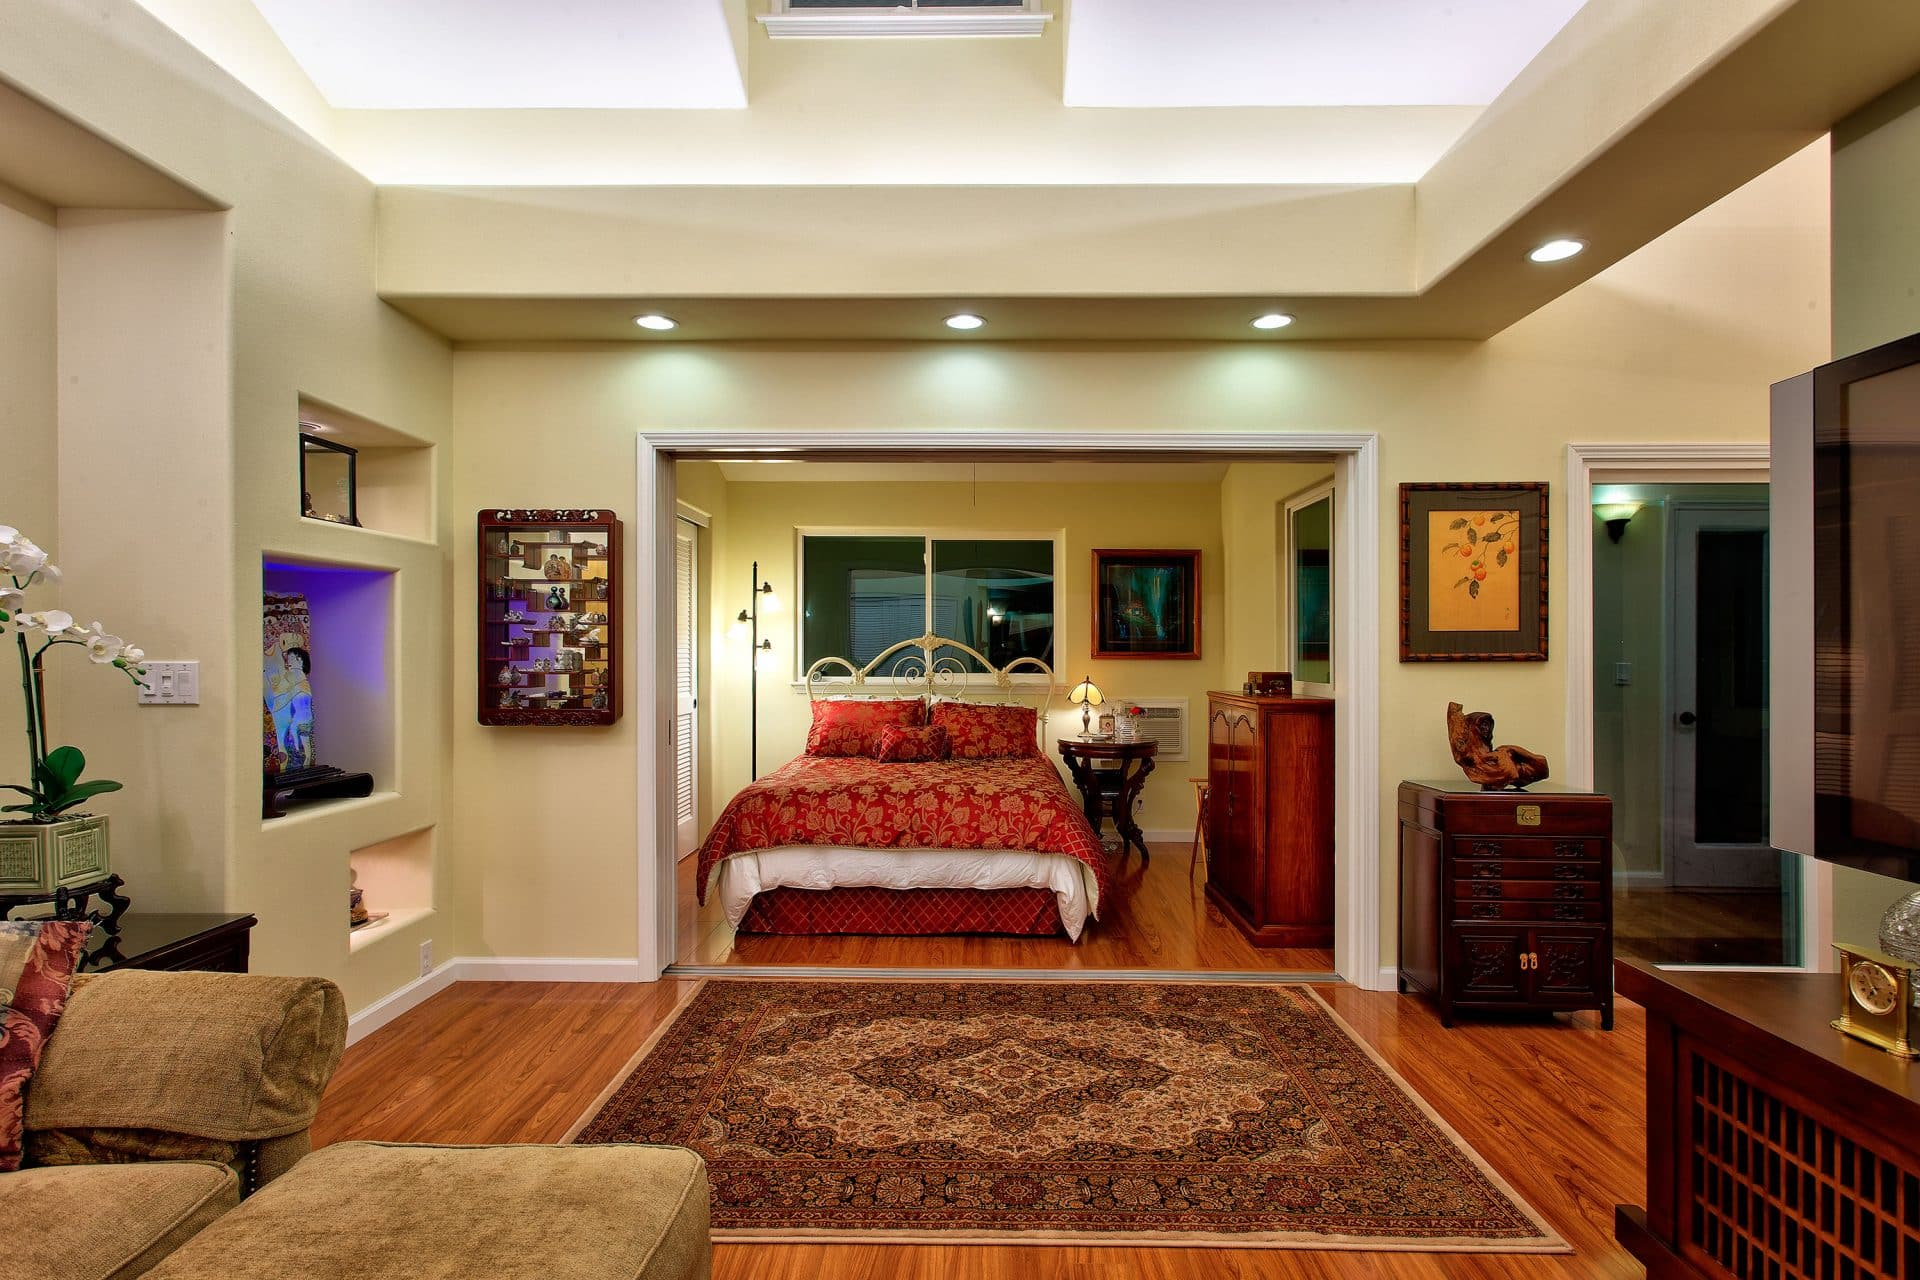 trends in kitchen redesign kitchen remodel hawaii 7 Feng Shui Tips for Hawaii Home Remodeling